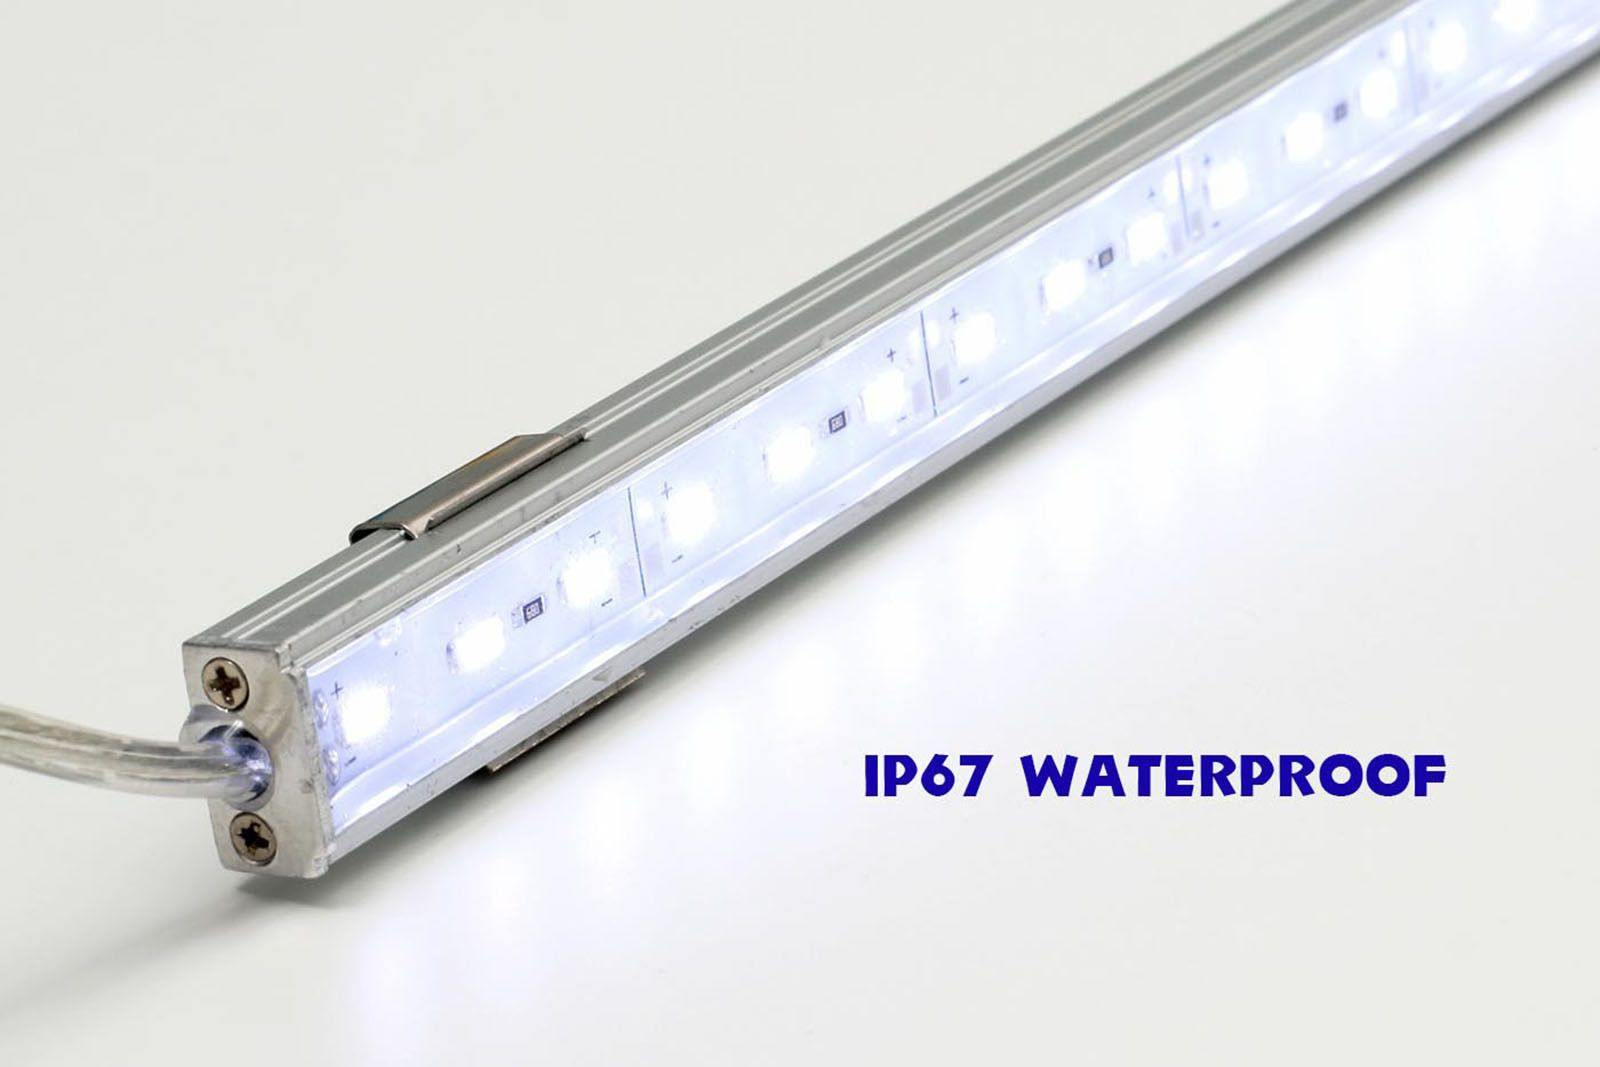 4x 05m 12v waterproof warm white 5630 led strip lights bars for car 4x 05m 12v waterproof warm white 5630 led strip lights bars for car camping boat aloadofball Image collections